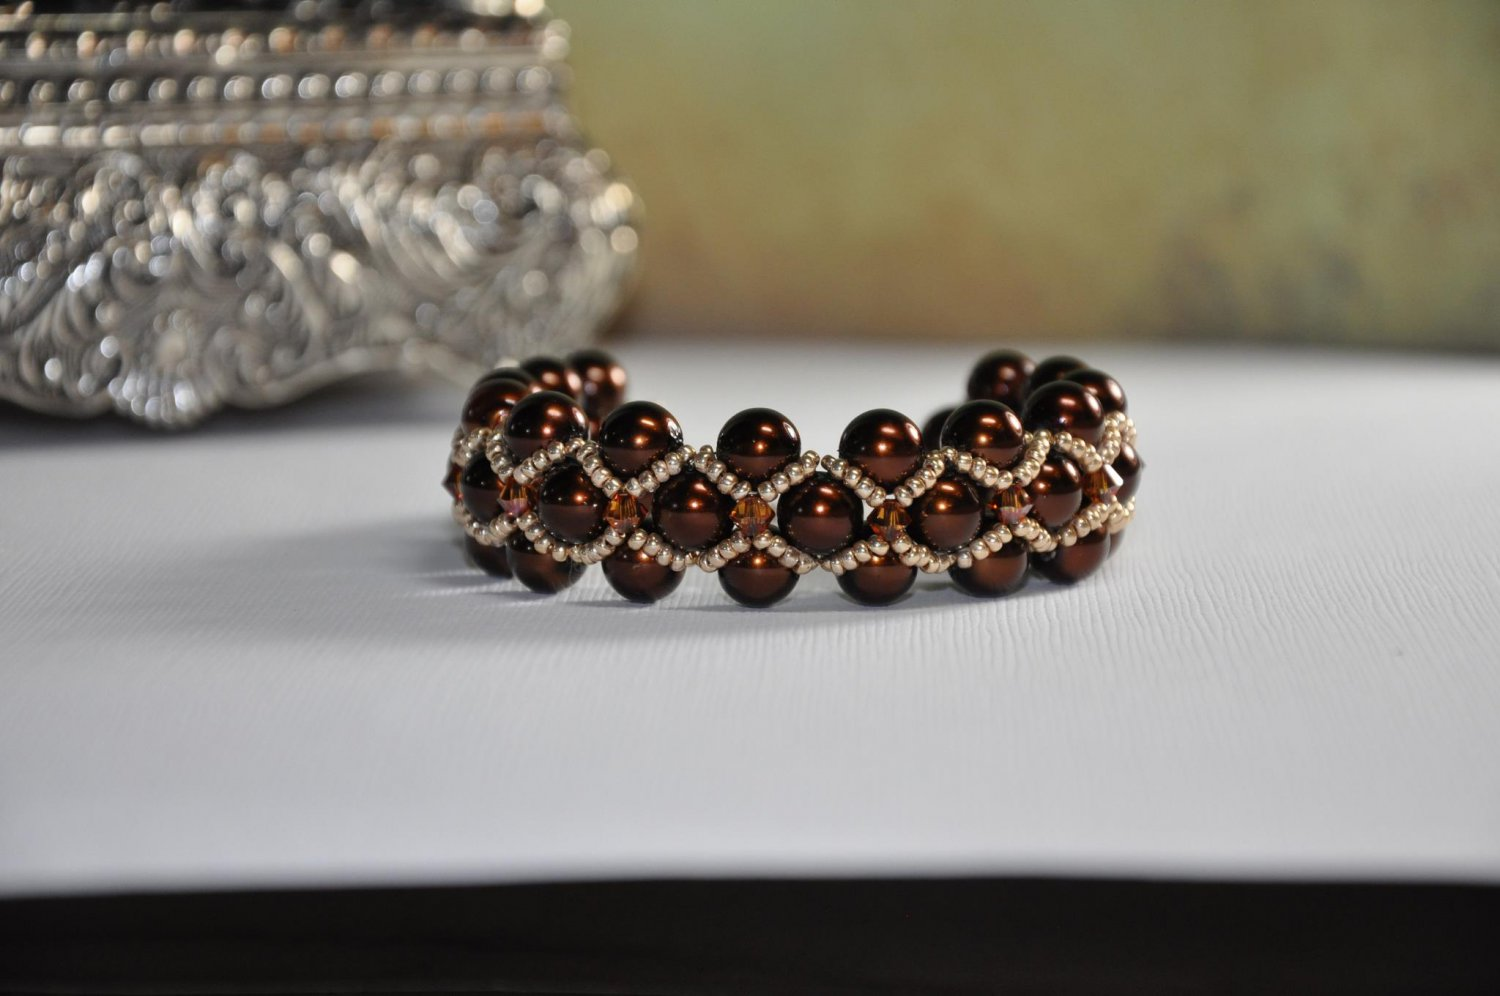 Bead Bracelet Brown Glass Pearls with Gold Seed Beads and Swarovski Crystals Handmade